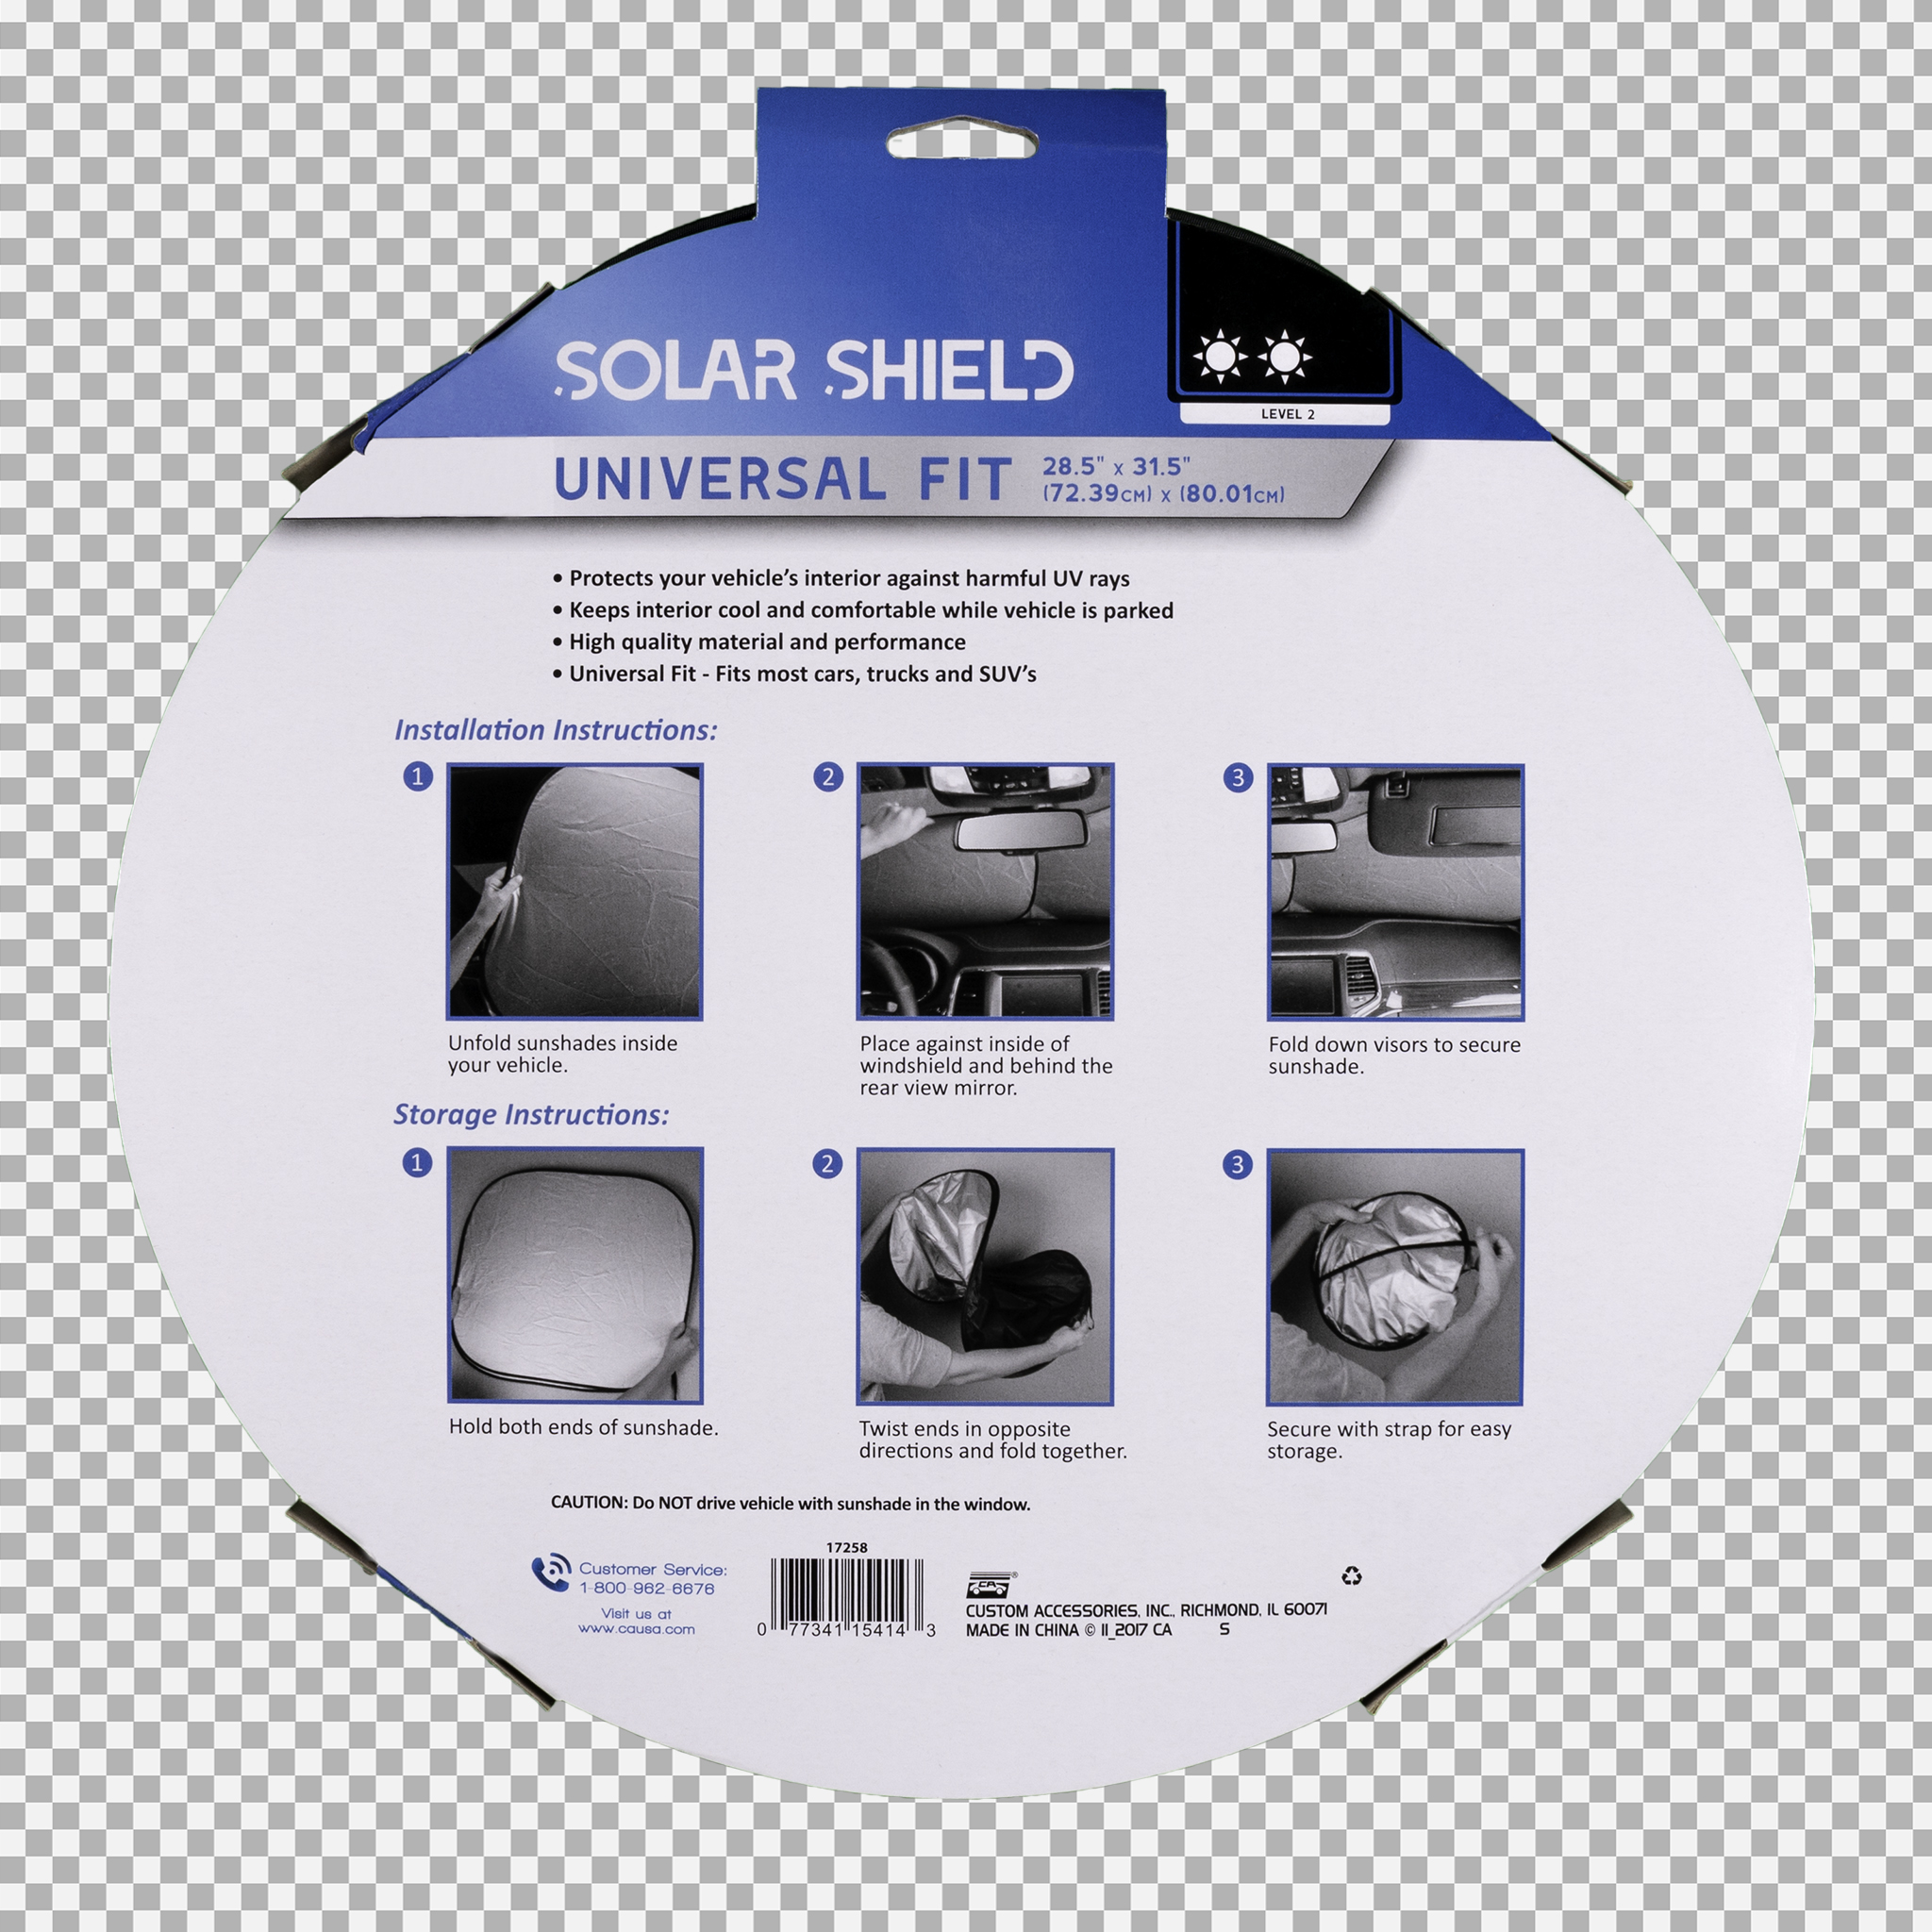 Beach Bum Solar Shield - Pair Packaging Back (Transparent Background)